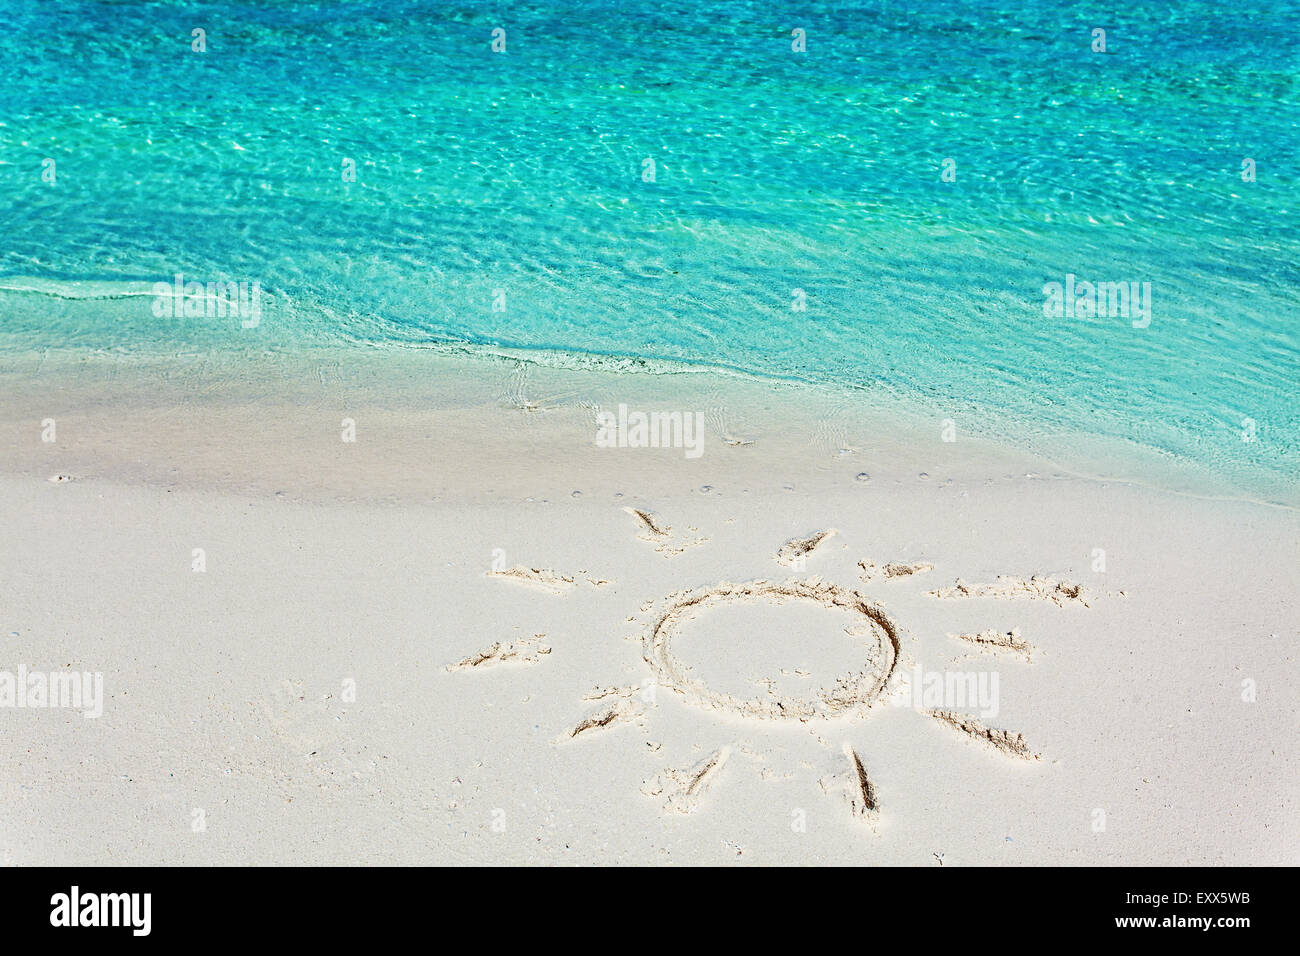 An image of a sun in the sand on the tropical beach - Stock Image